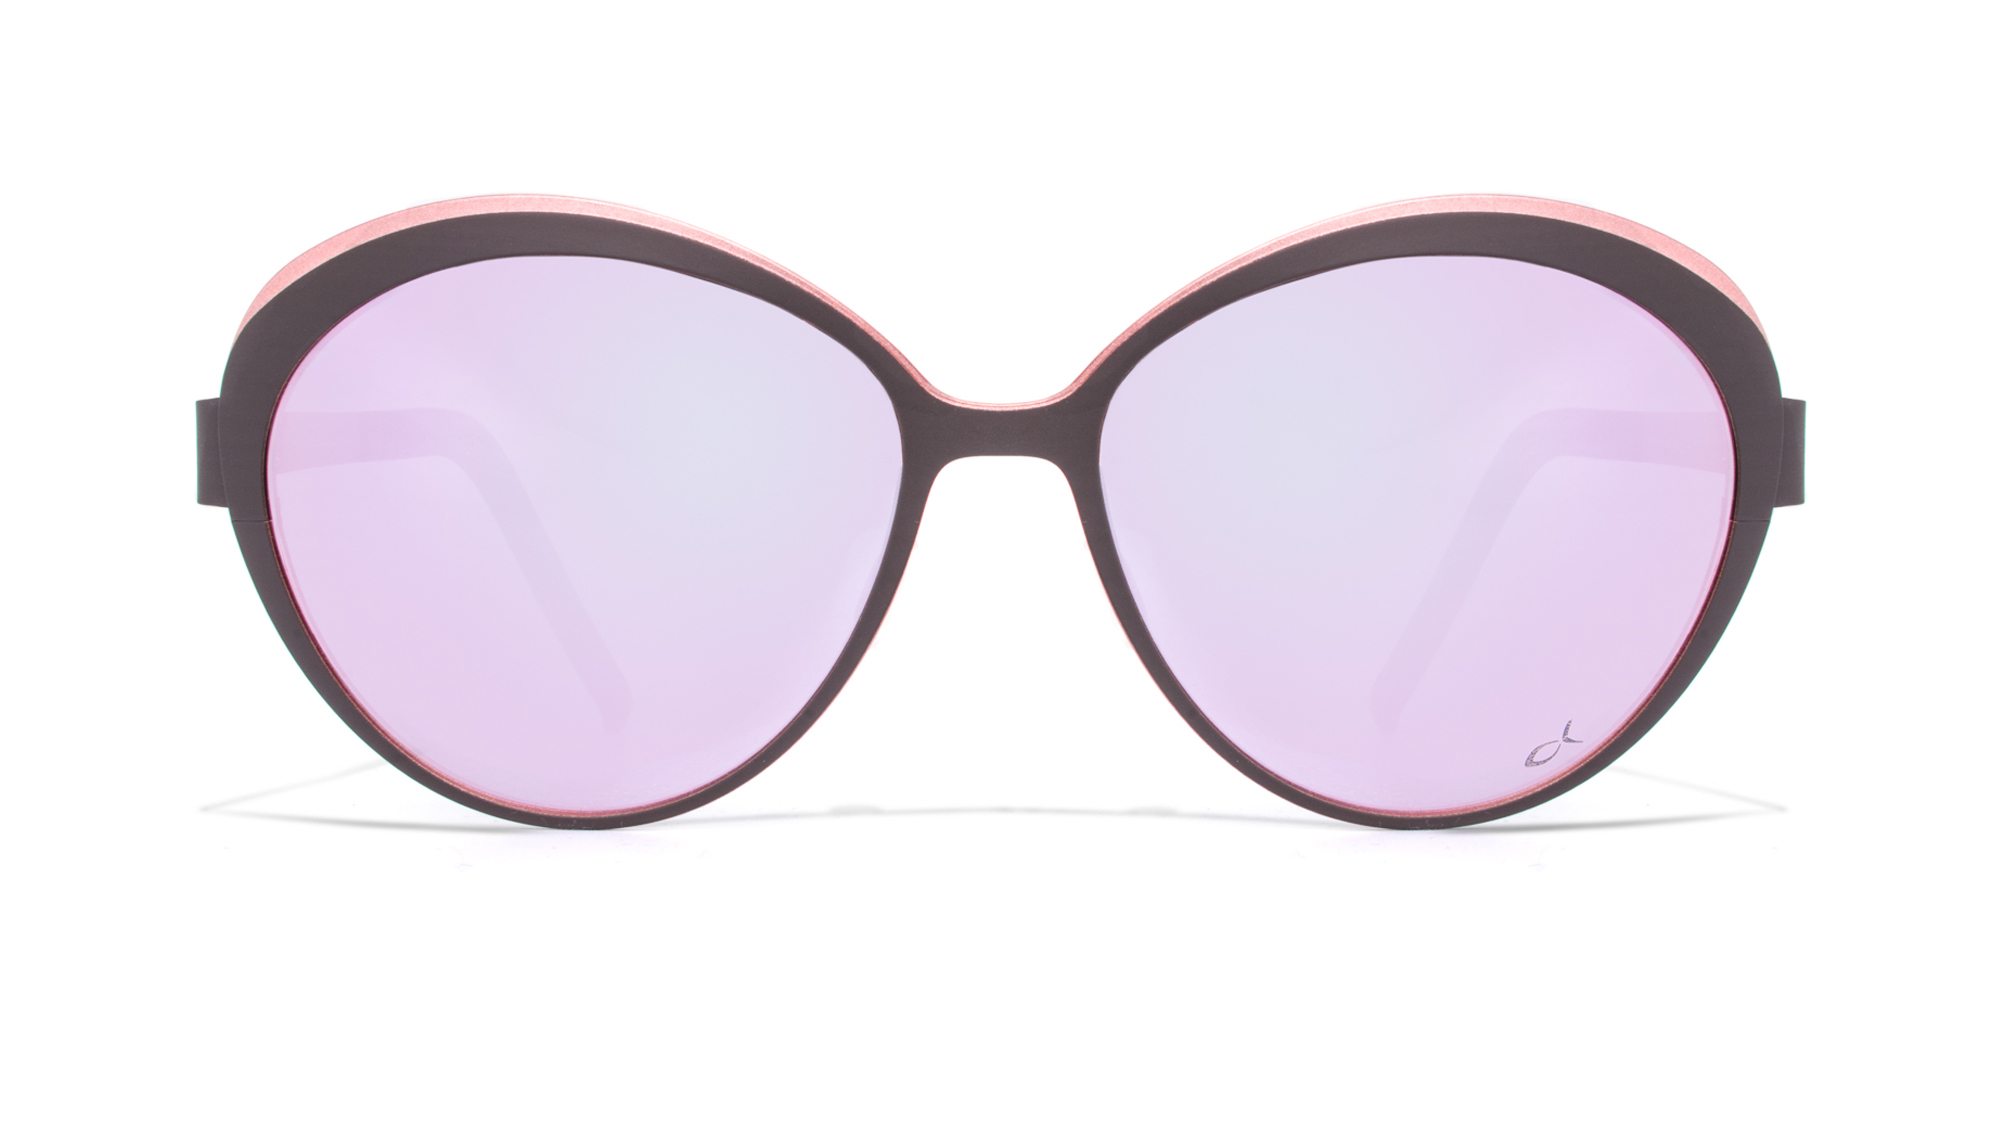 Blackfin | frame: Martinique BF778 Col.679